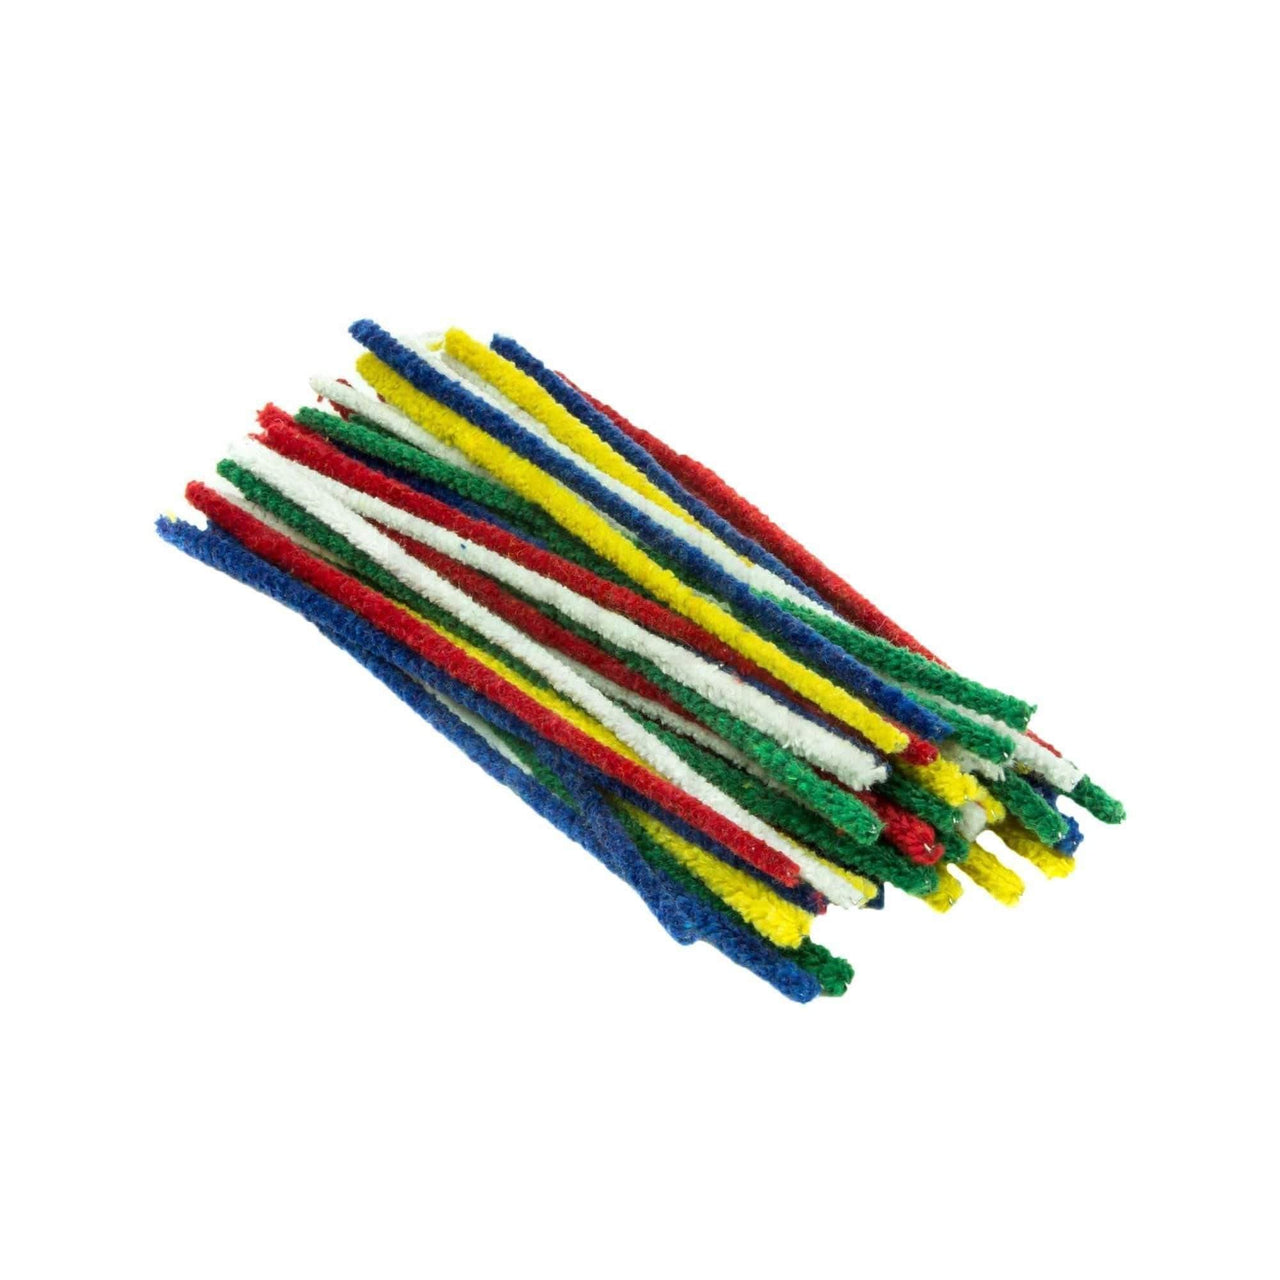 50 Pack of Pipe Cleaners | The710Source.com